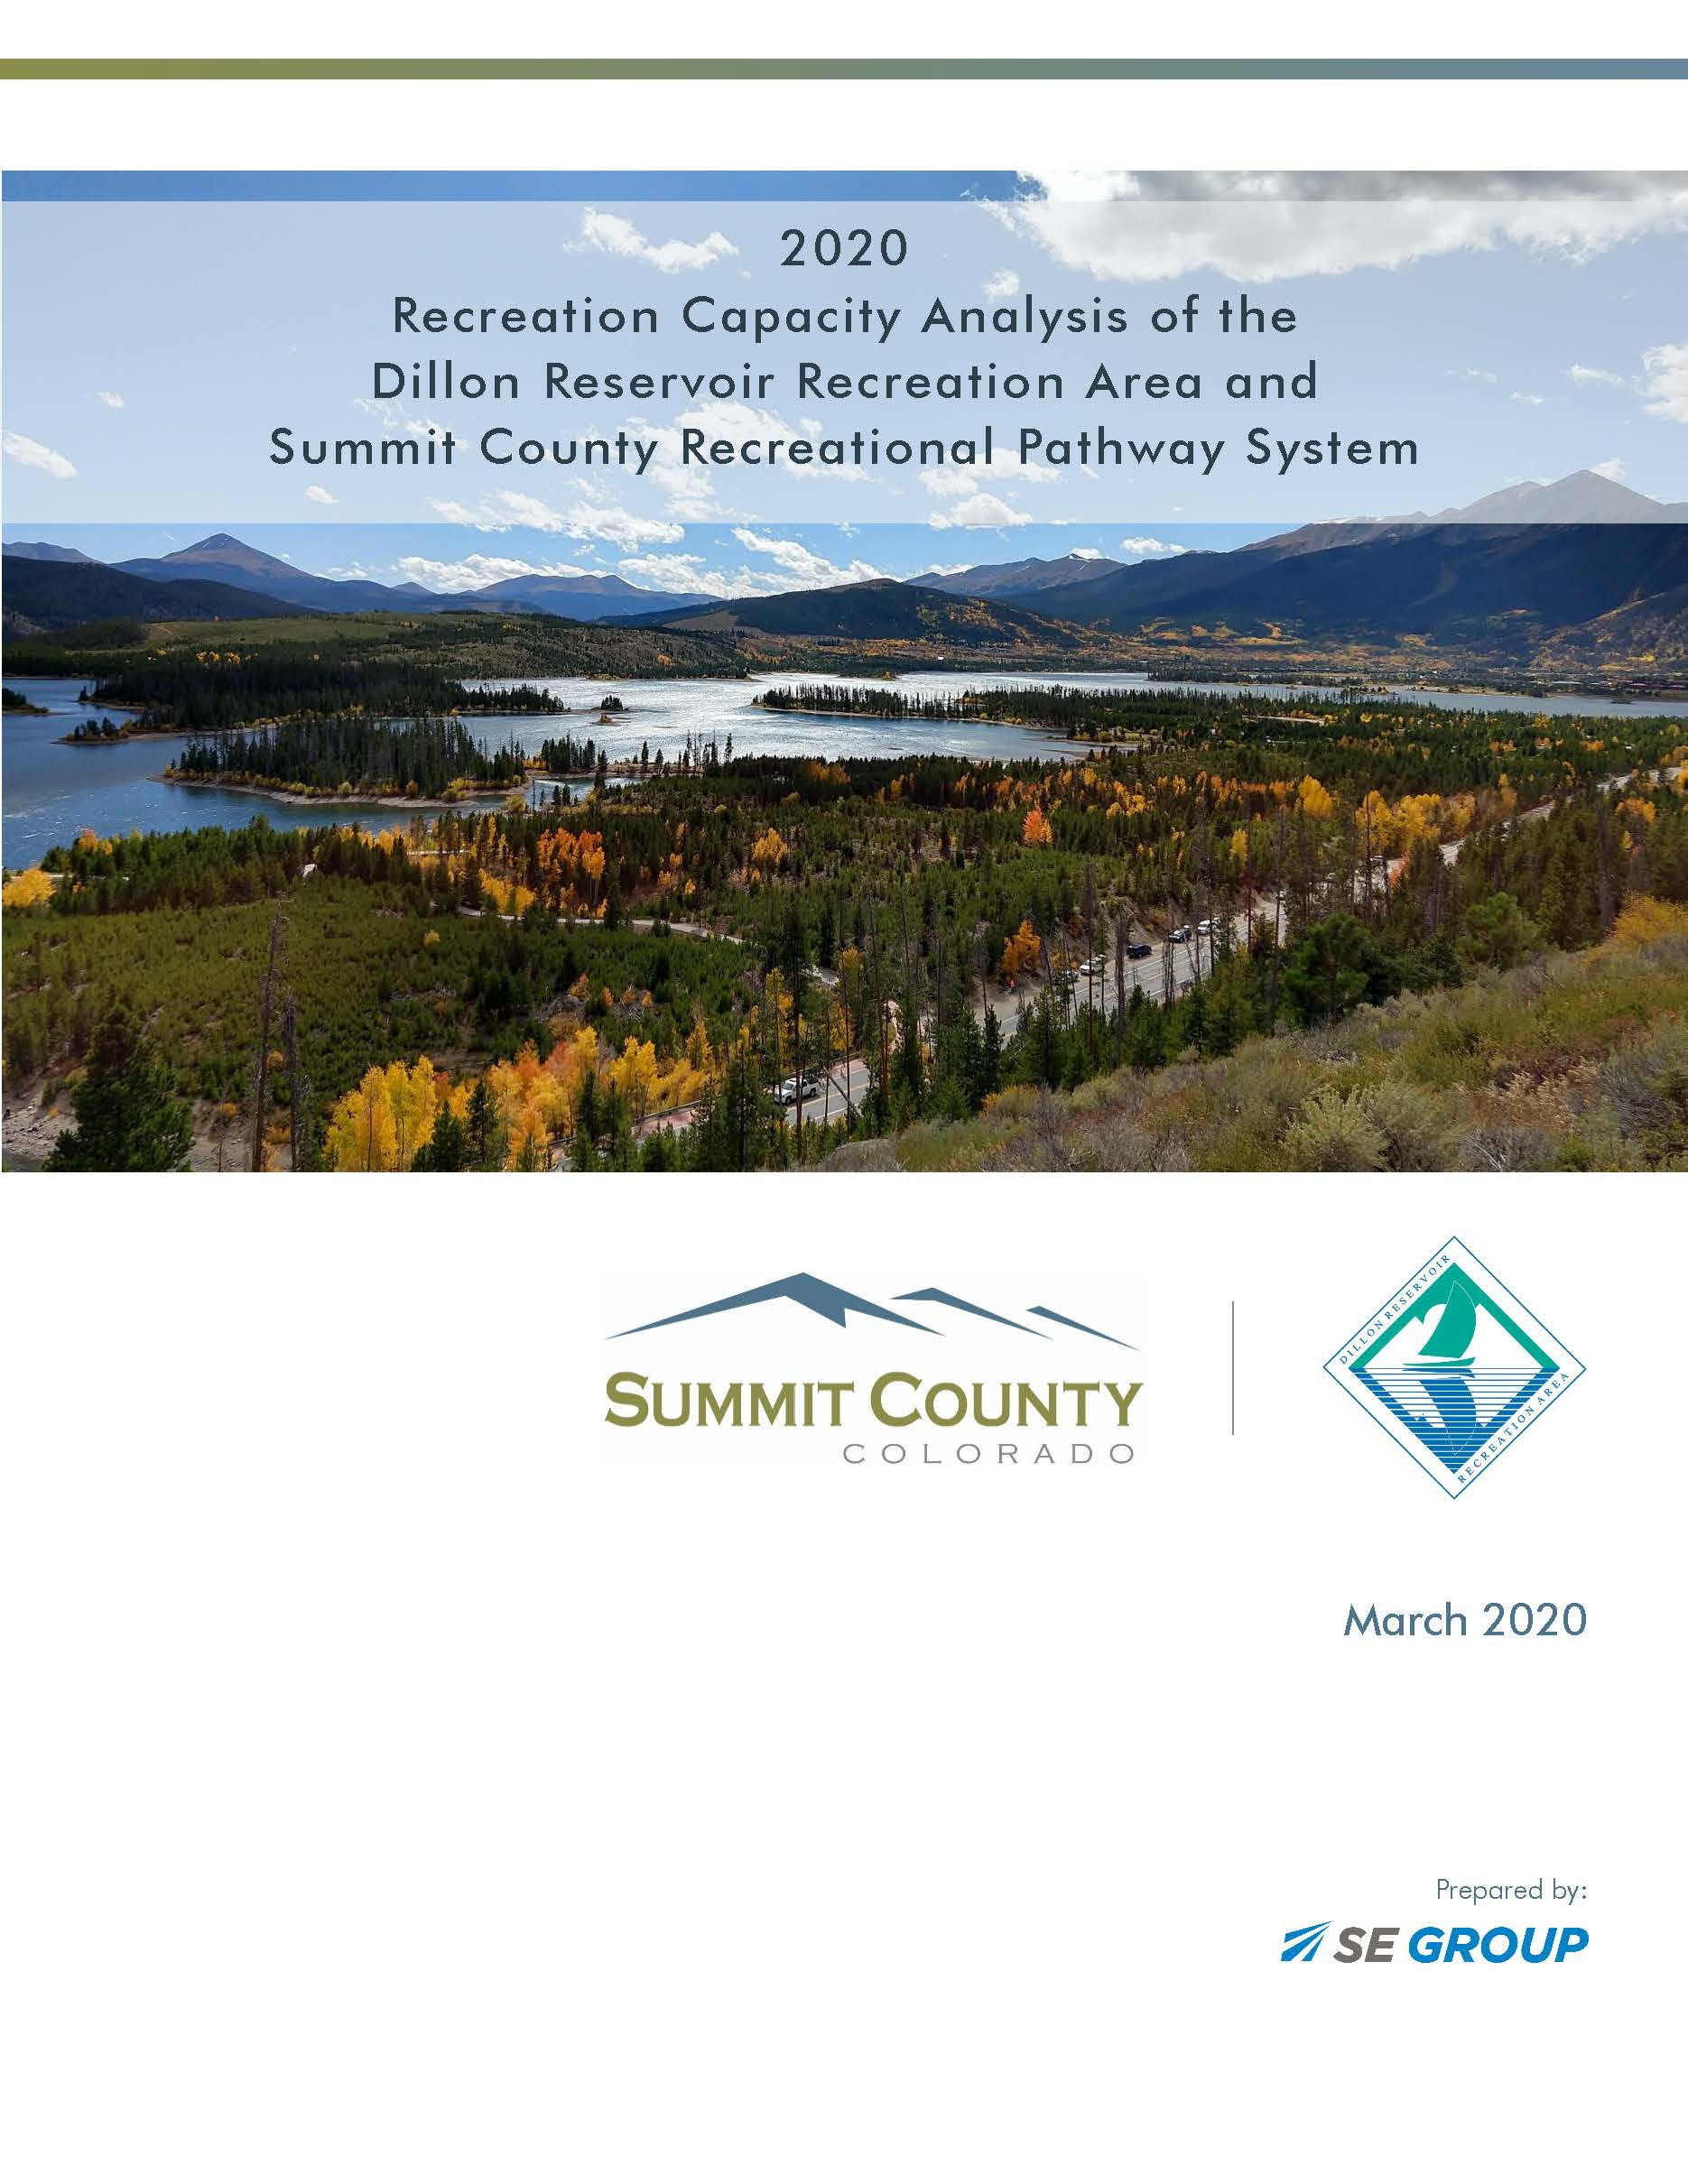 2020 Recreation Capacity Analysis_FINAL_Page_001